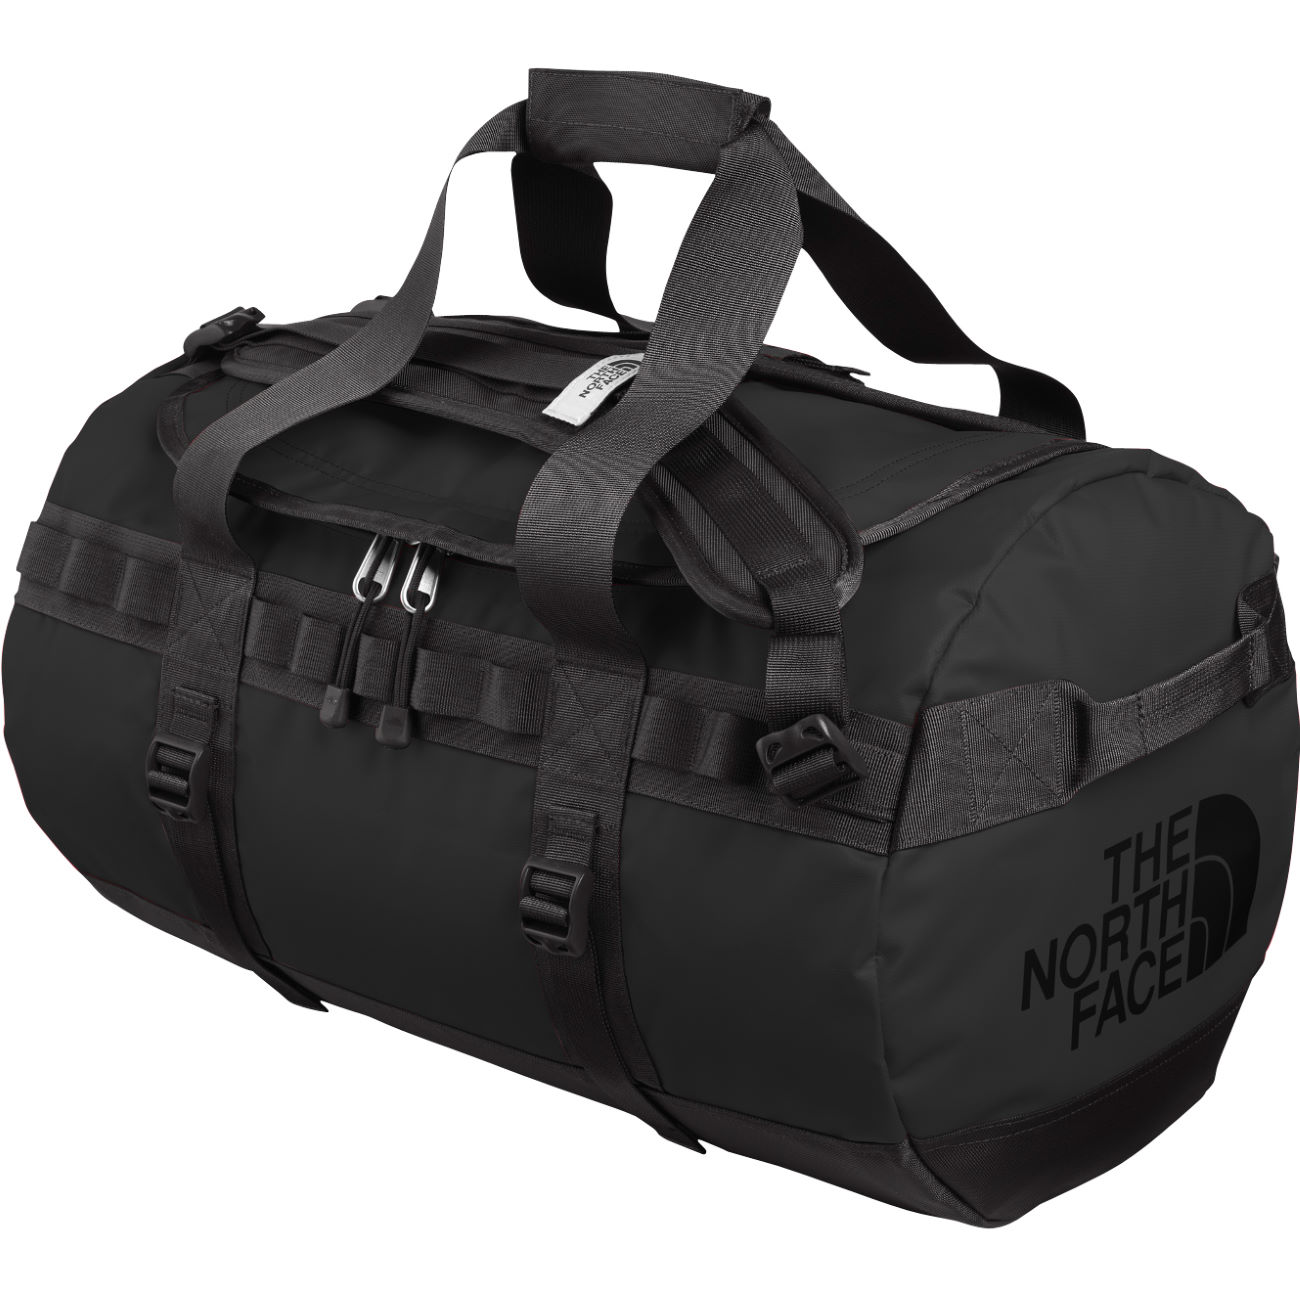 sacs de voyage the north face base camp duffel bag small wiggle france. Black Bedroom Furniture Sets. Home Design Ideas